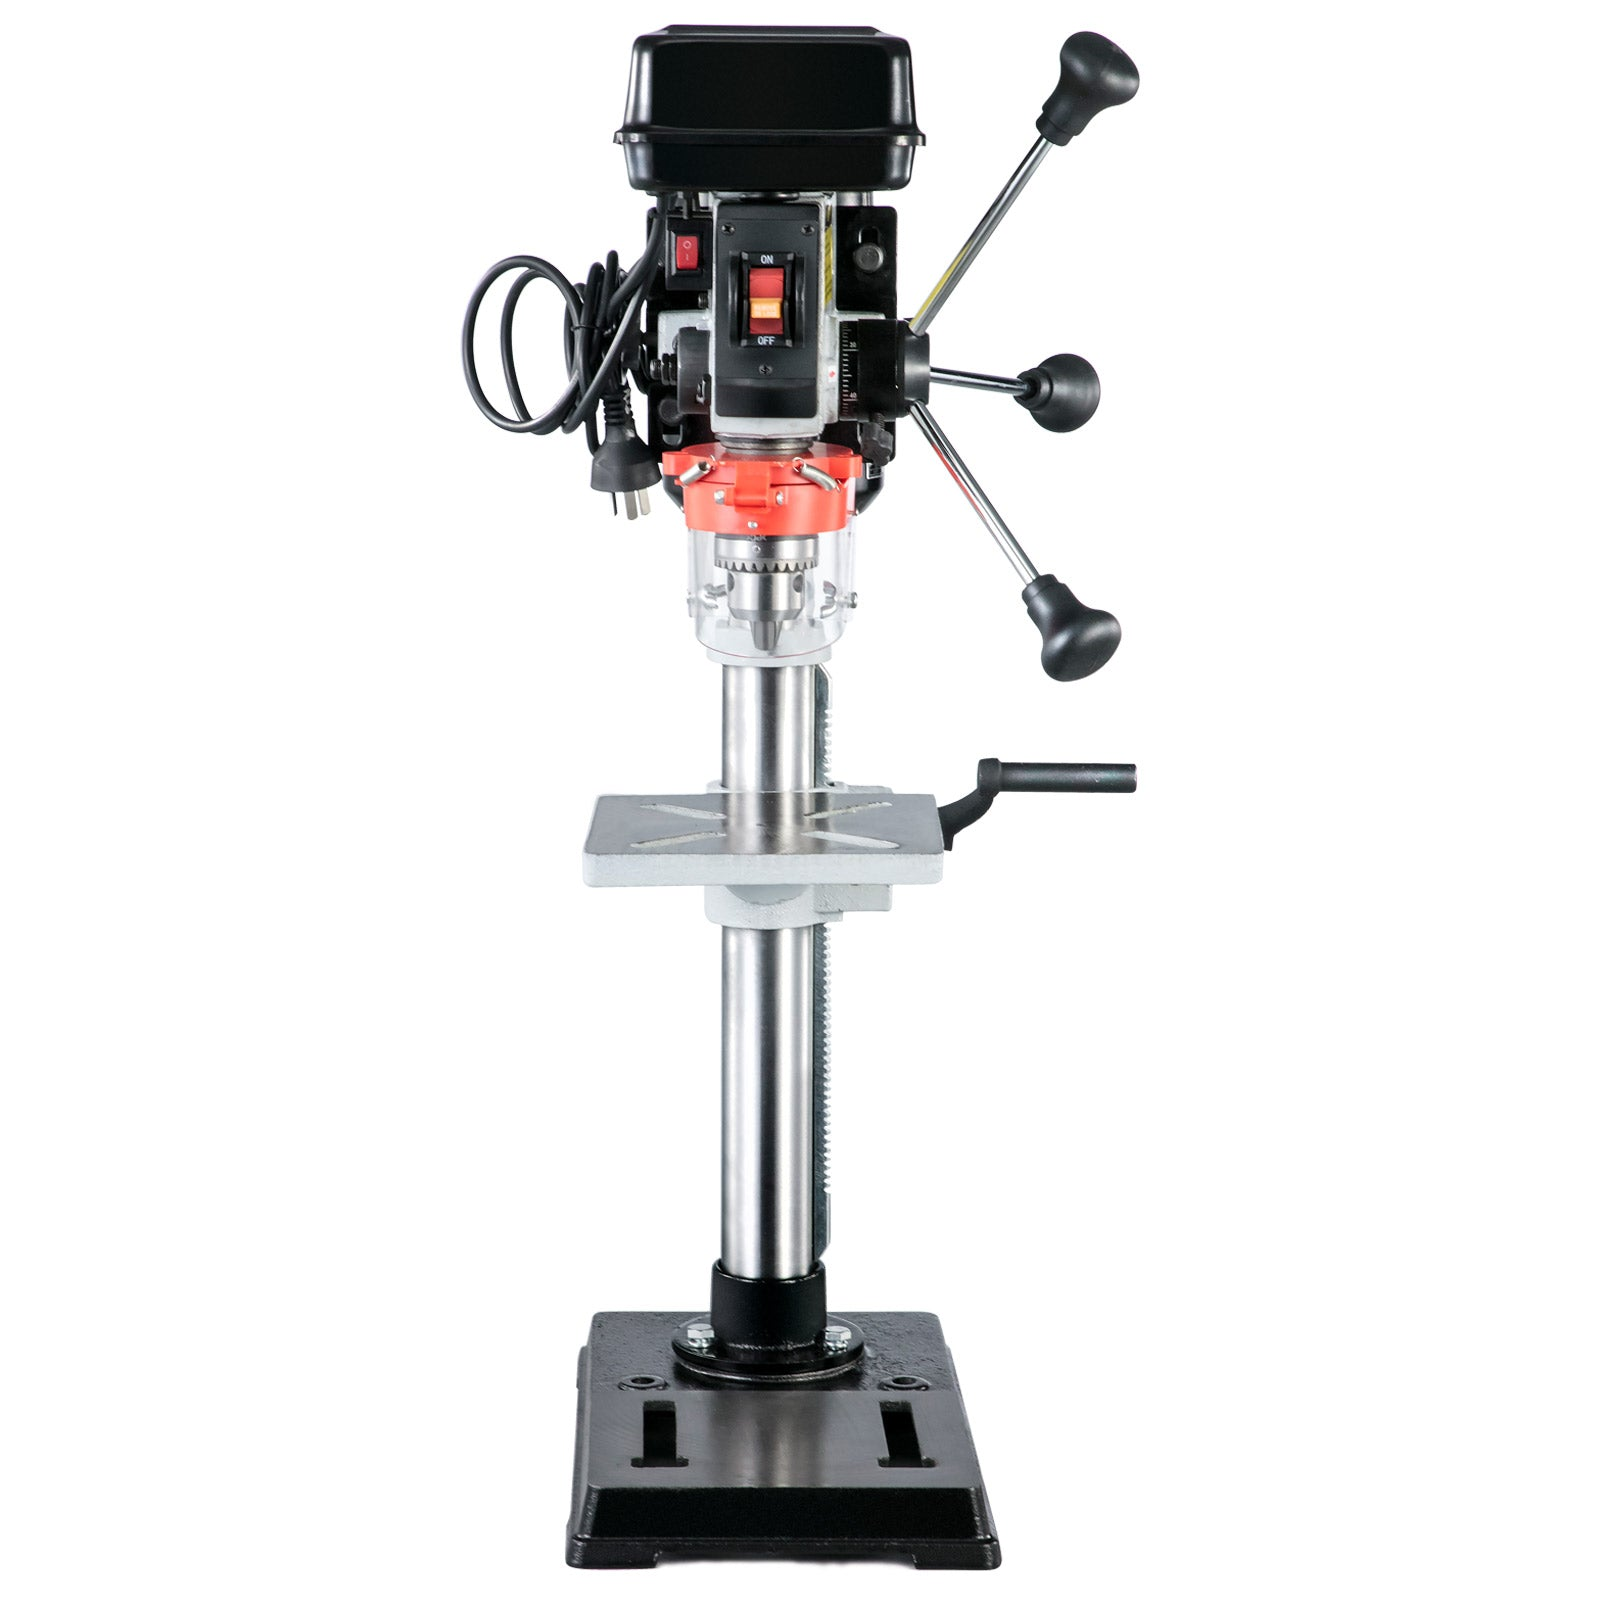 Bench Drill Press Drilling Machine 750w 1hp 4/5''(20mm) Adjustable Drill Table